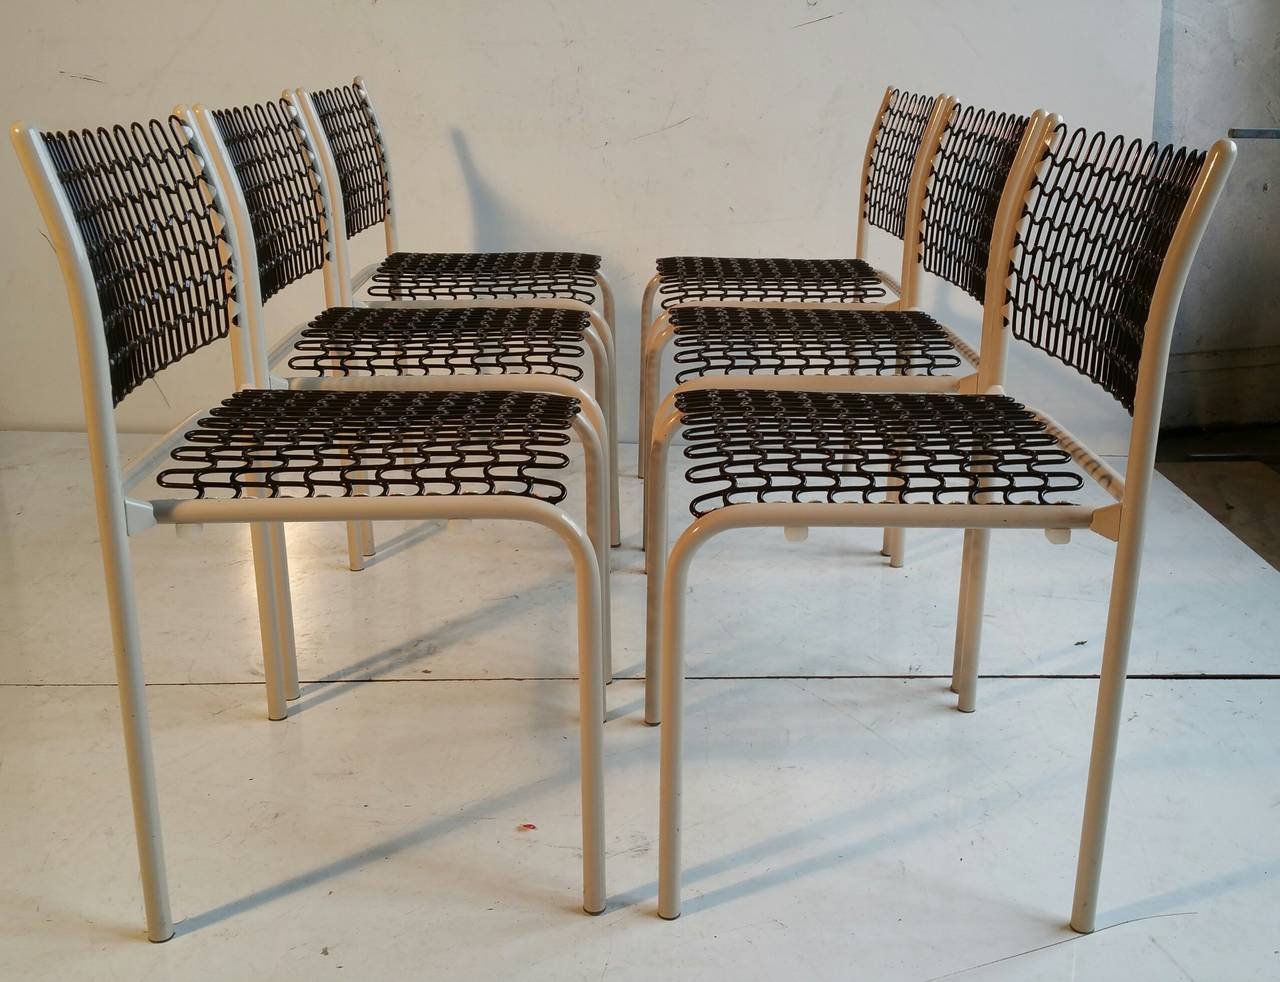 A set of six Sof-tek chairs designed by David Rowland for Thonet. These chairs from the 1970